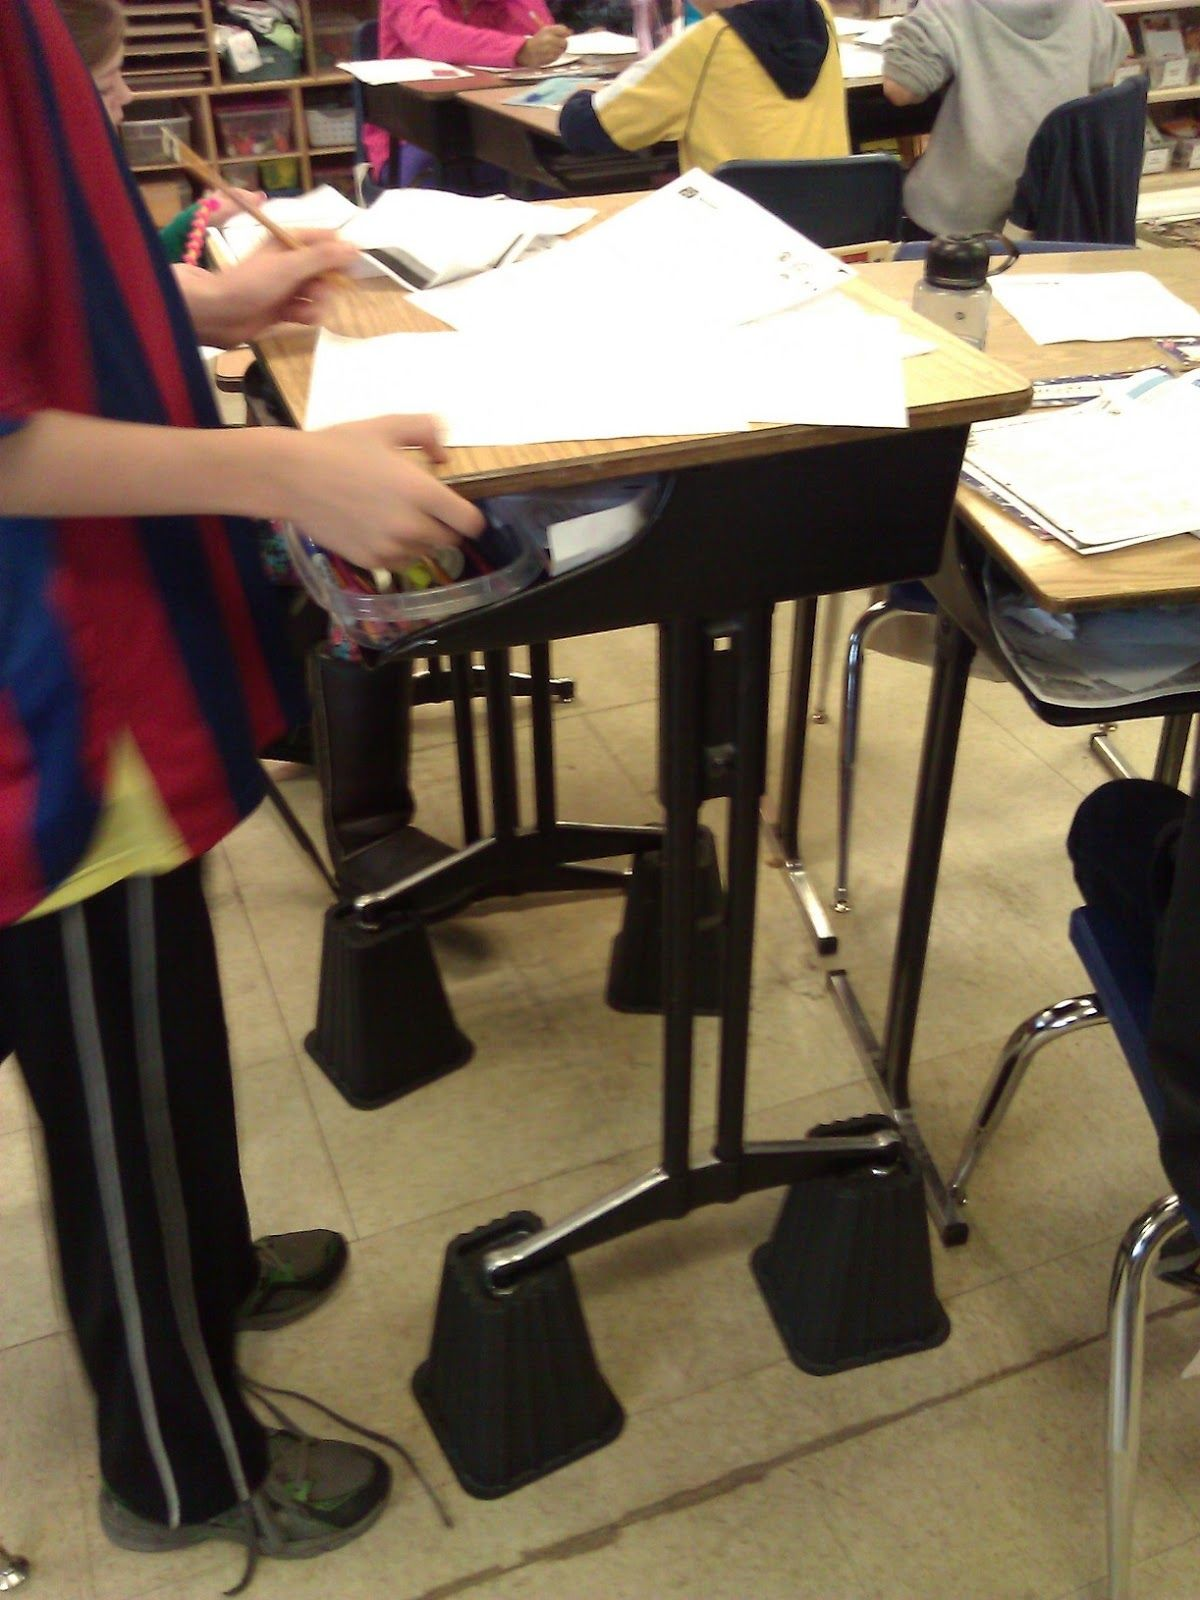 Organizing Chaos in the Classroom Use bed risers to make a